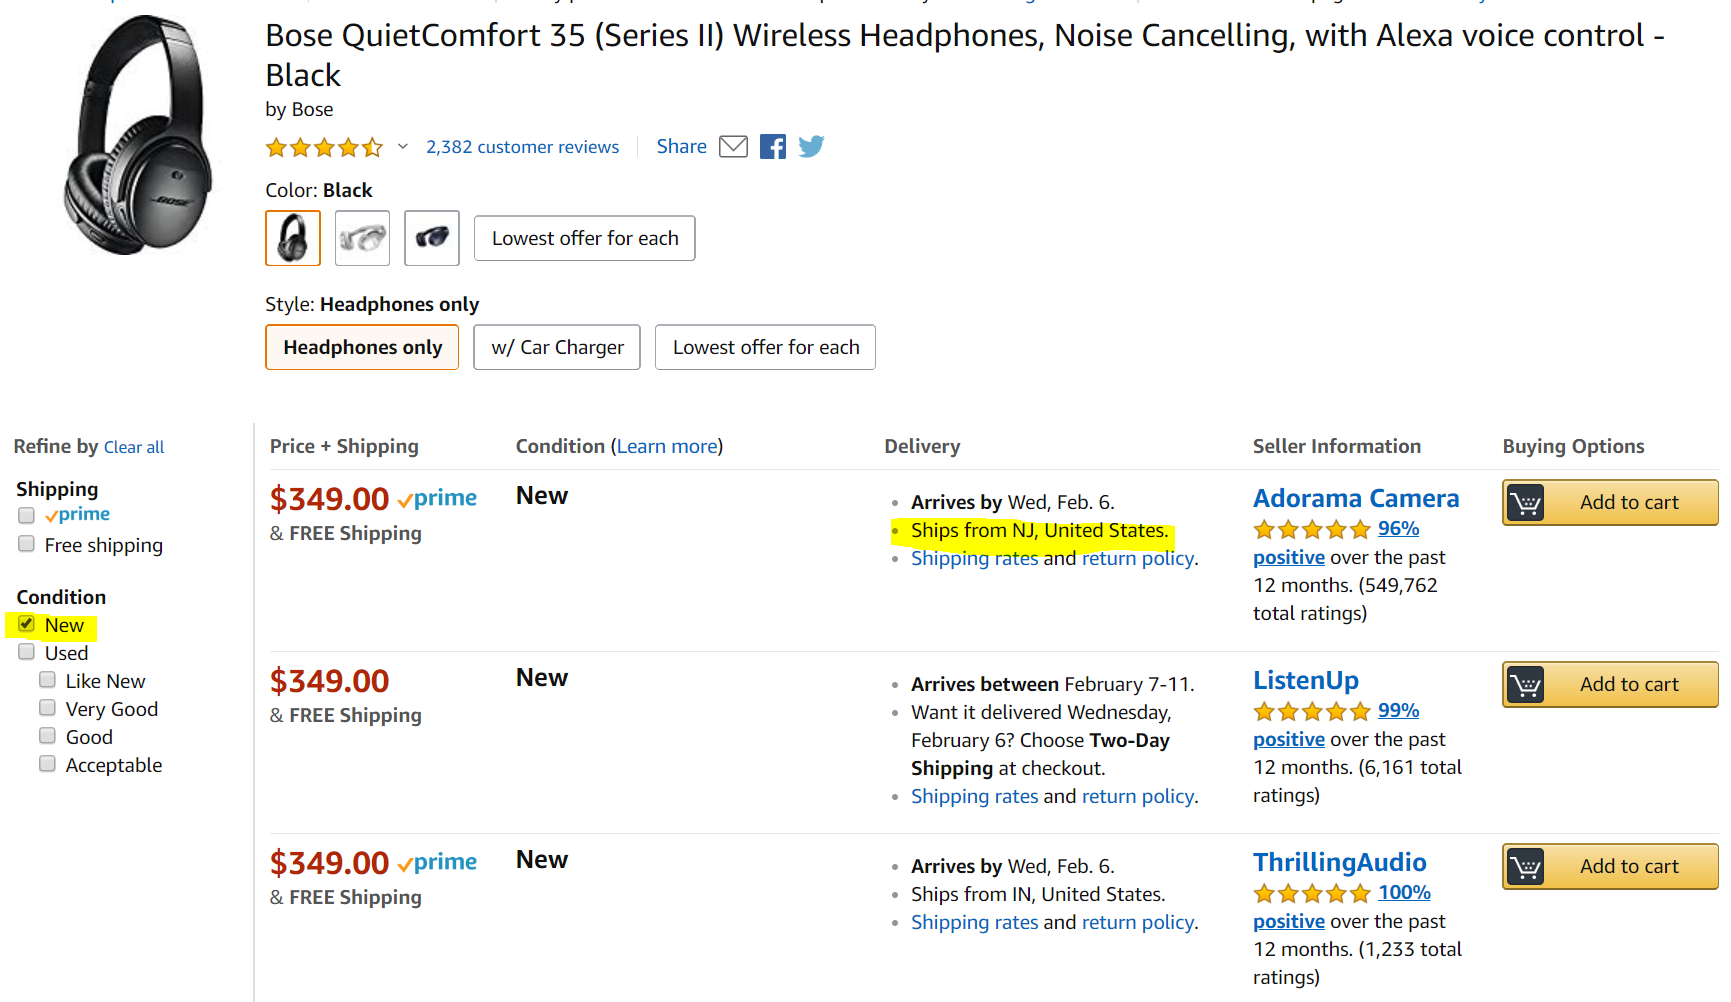 Third party offers for Bose QuietComfort 35